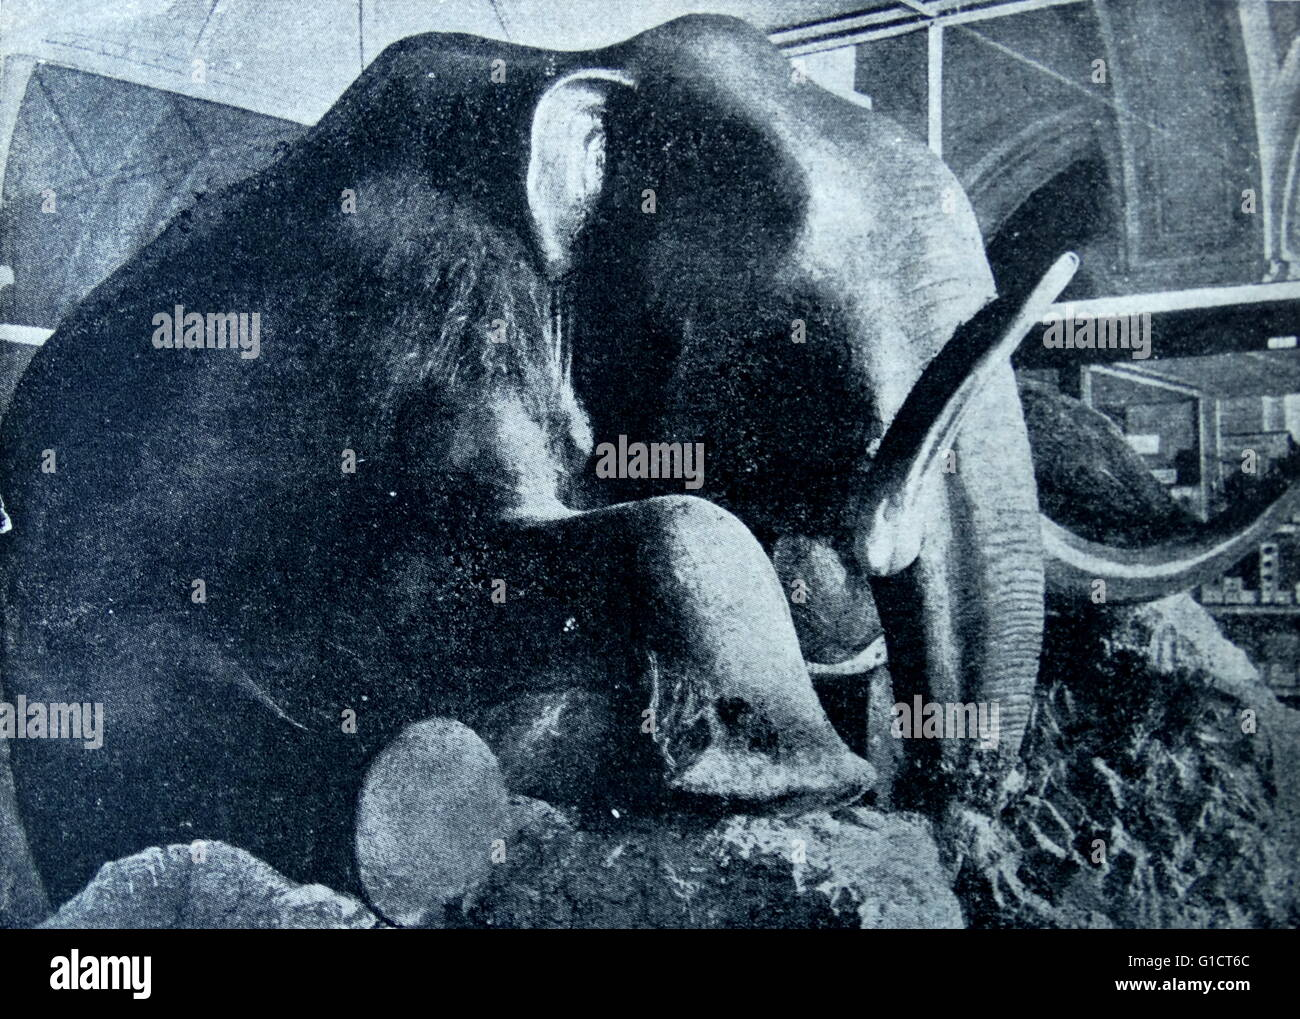 Photograph of the prehistoric Mammoth. Dated 1890 - Stock Image